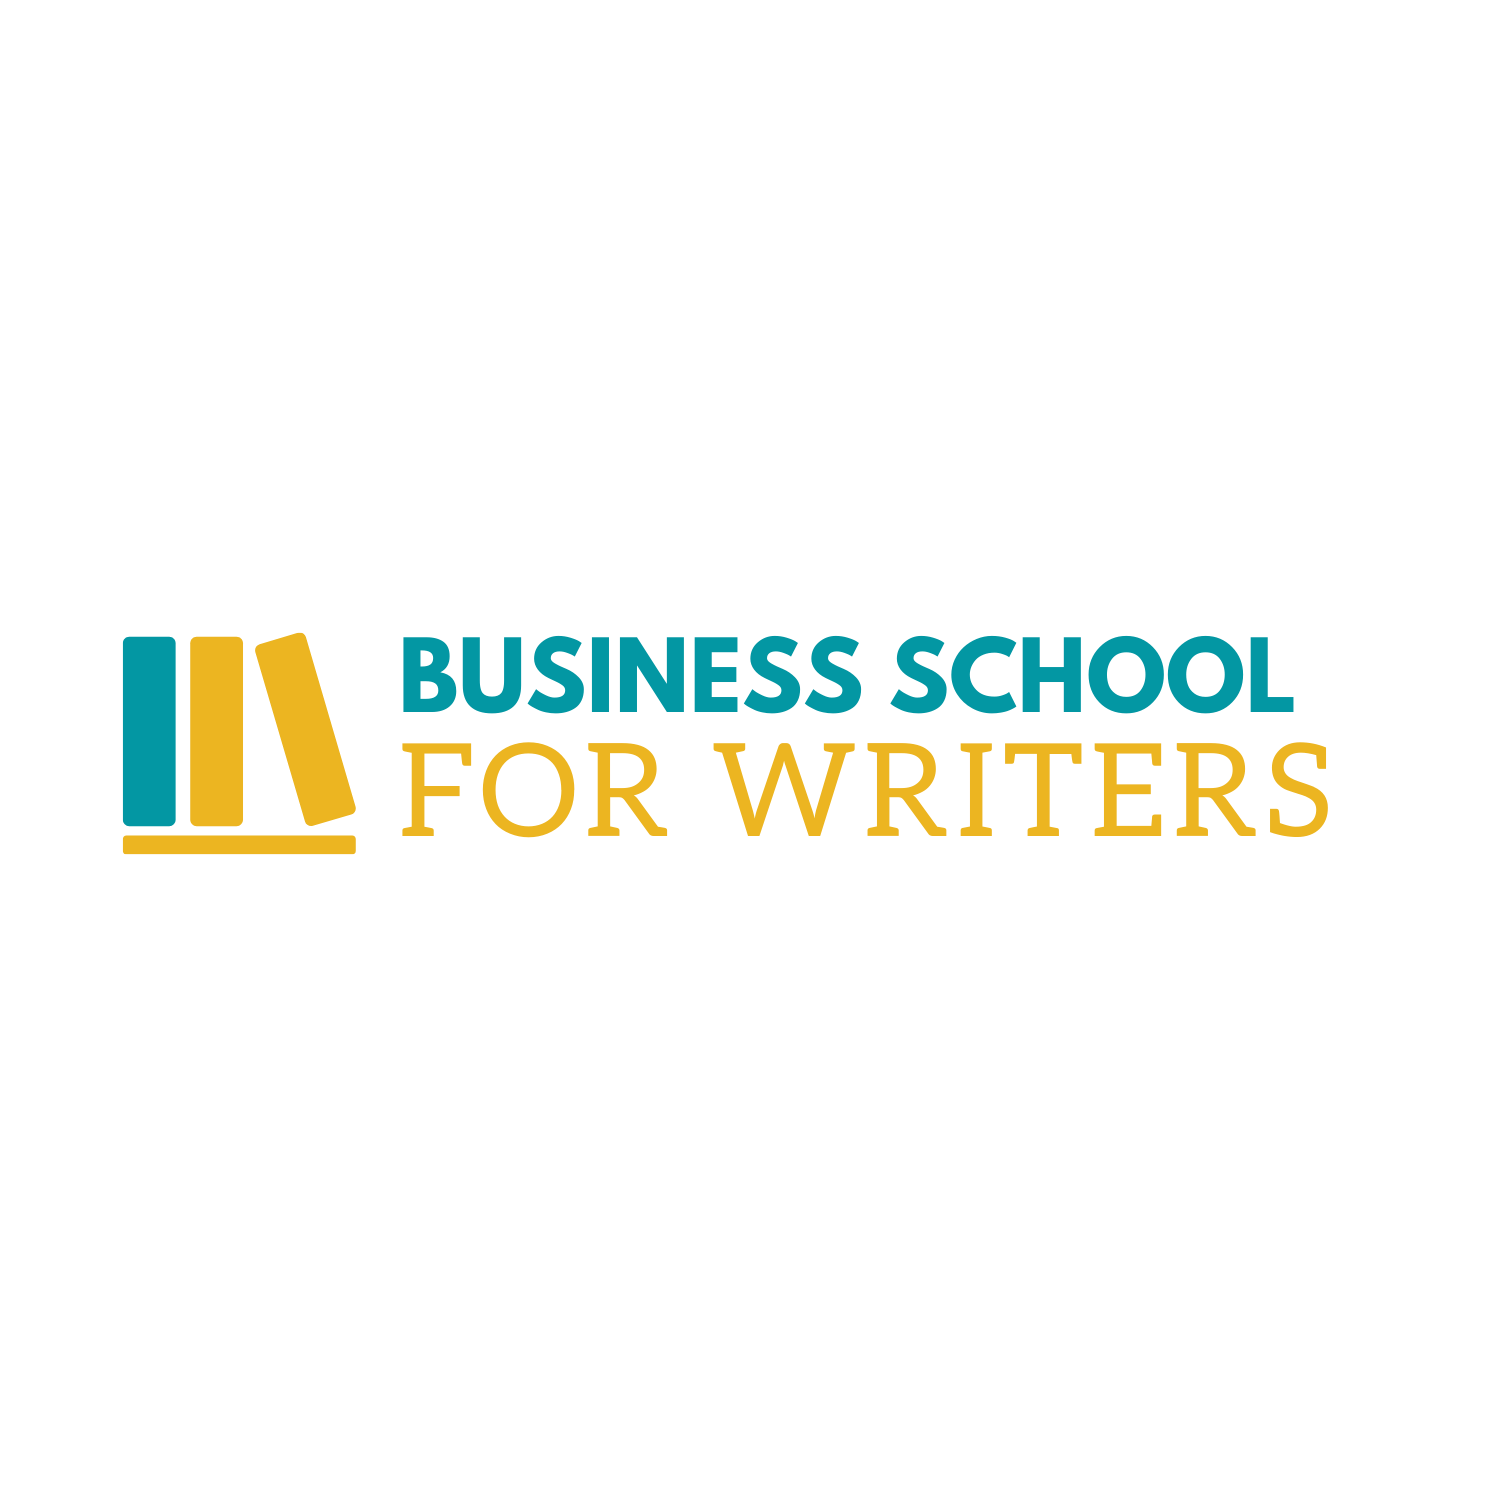 Business School for Writers